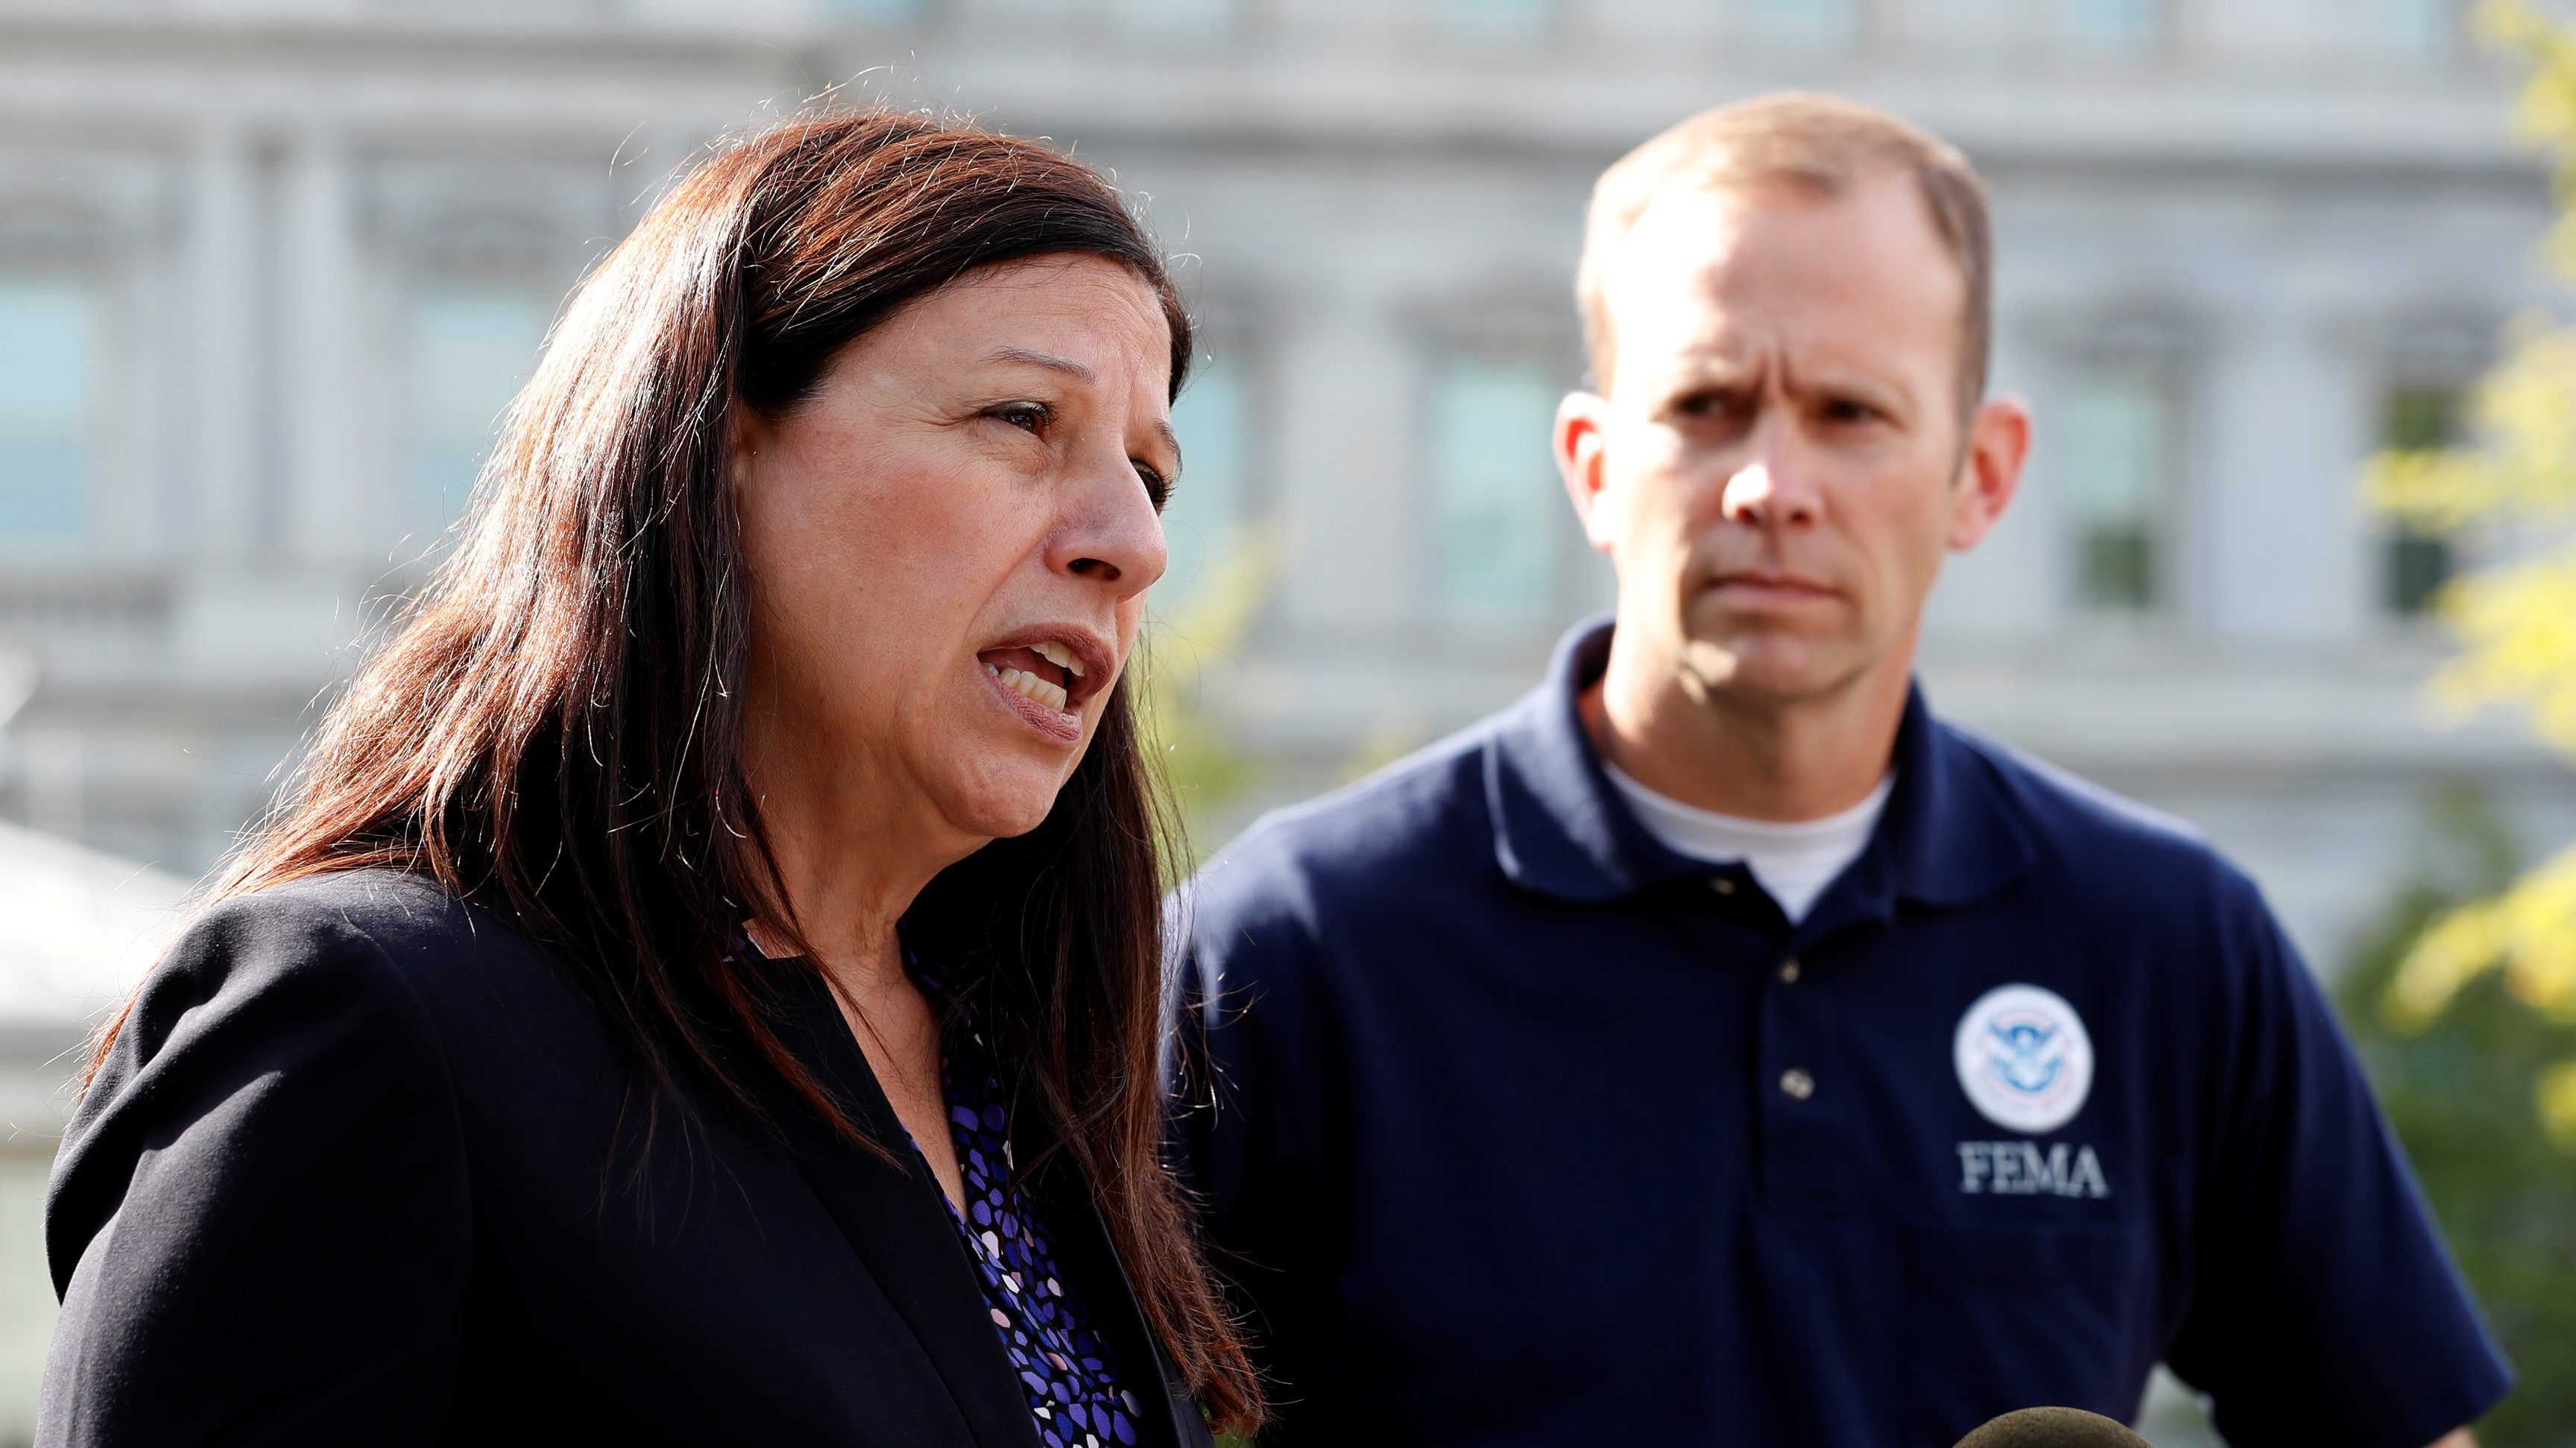 U.S. acting Secretary of Homeland Security Elaine Duke and Federal Emergency Management Agency (FEMA) Administrator Brock Long speak to reporters about Hurricane Maria relief efforts after meeting at the White House in Washington, U.S. September 26, 2017.  REUTERS/Jonathan Ernst - RC1A026E8AC0